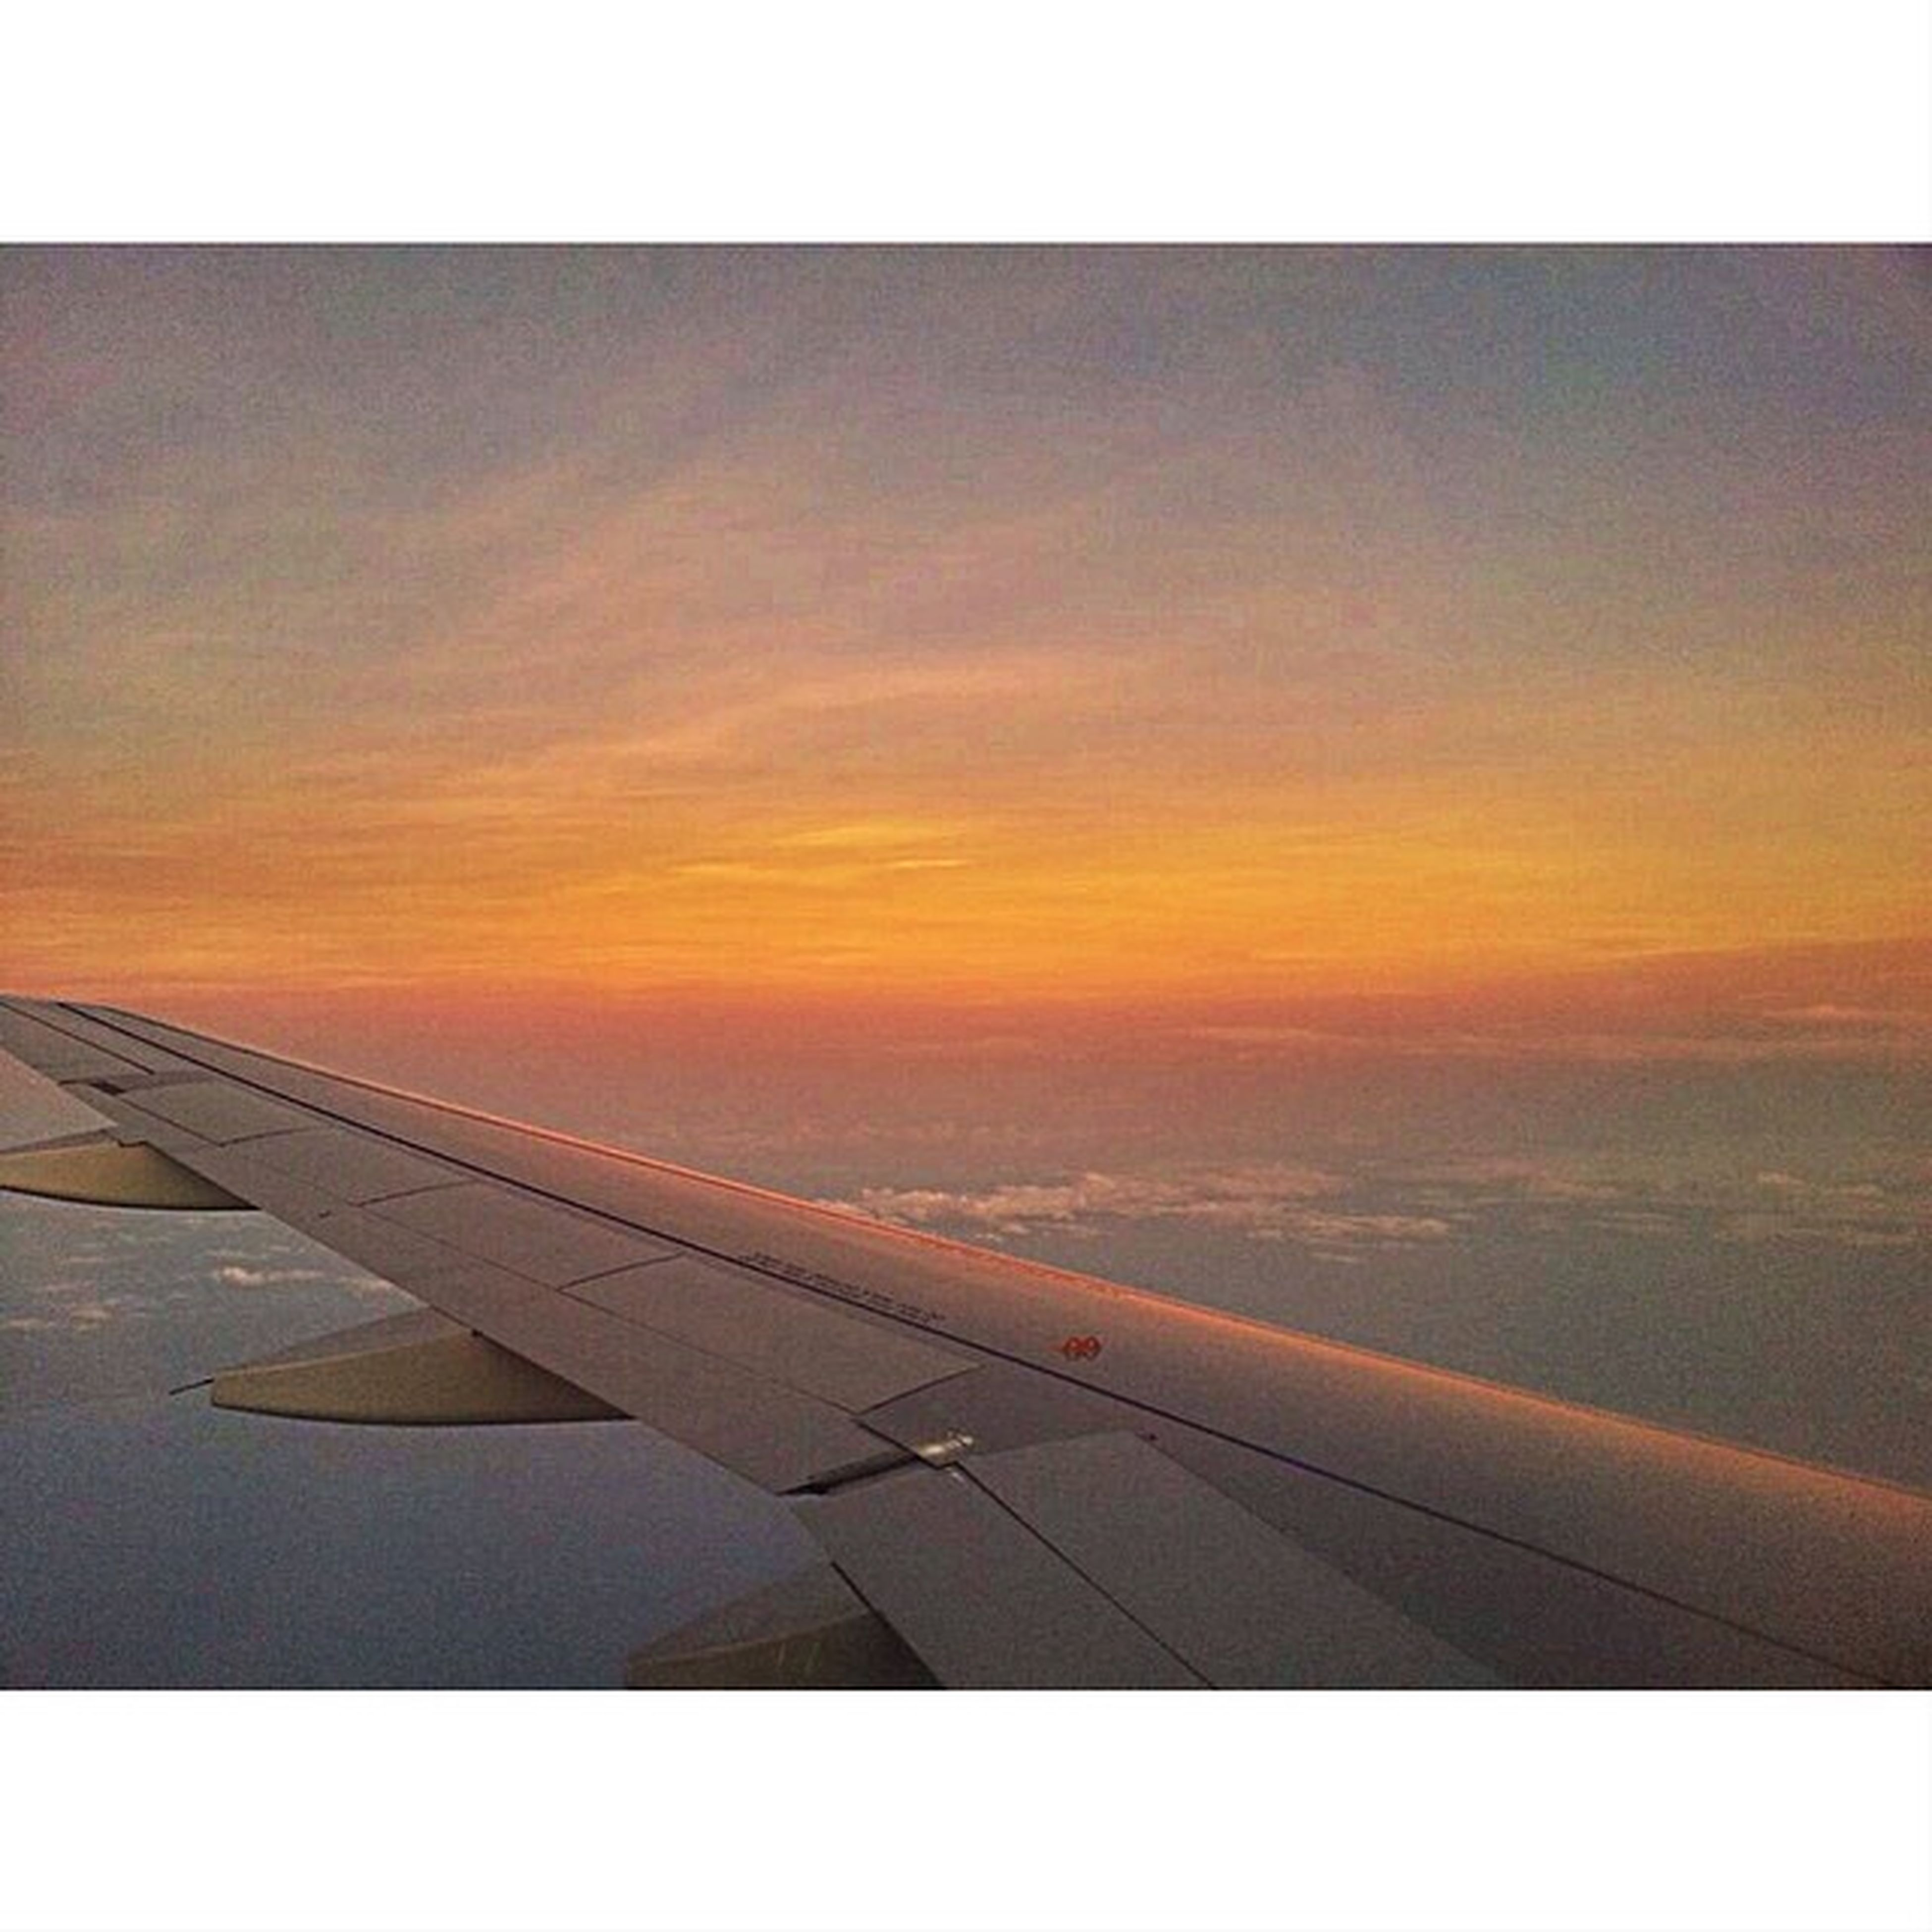 IPhone5 HDR Random Fromyseatwindow sky colors dawn